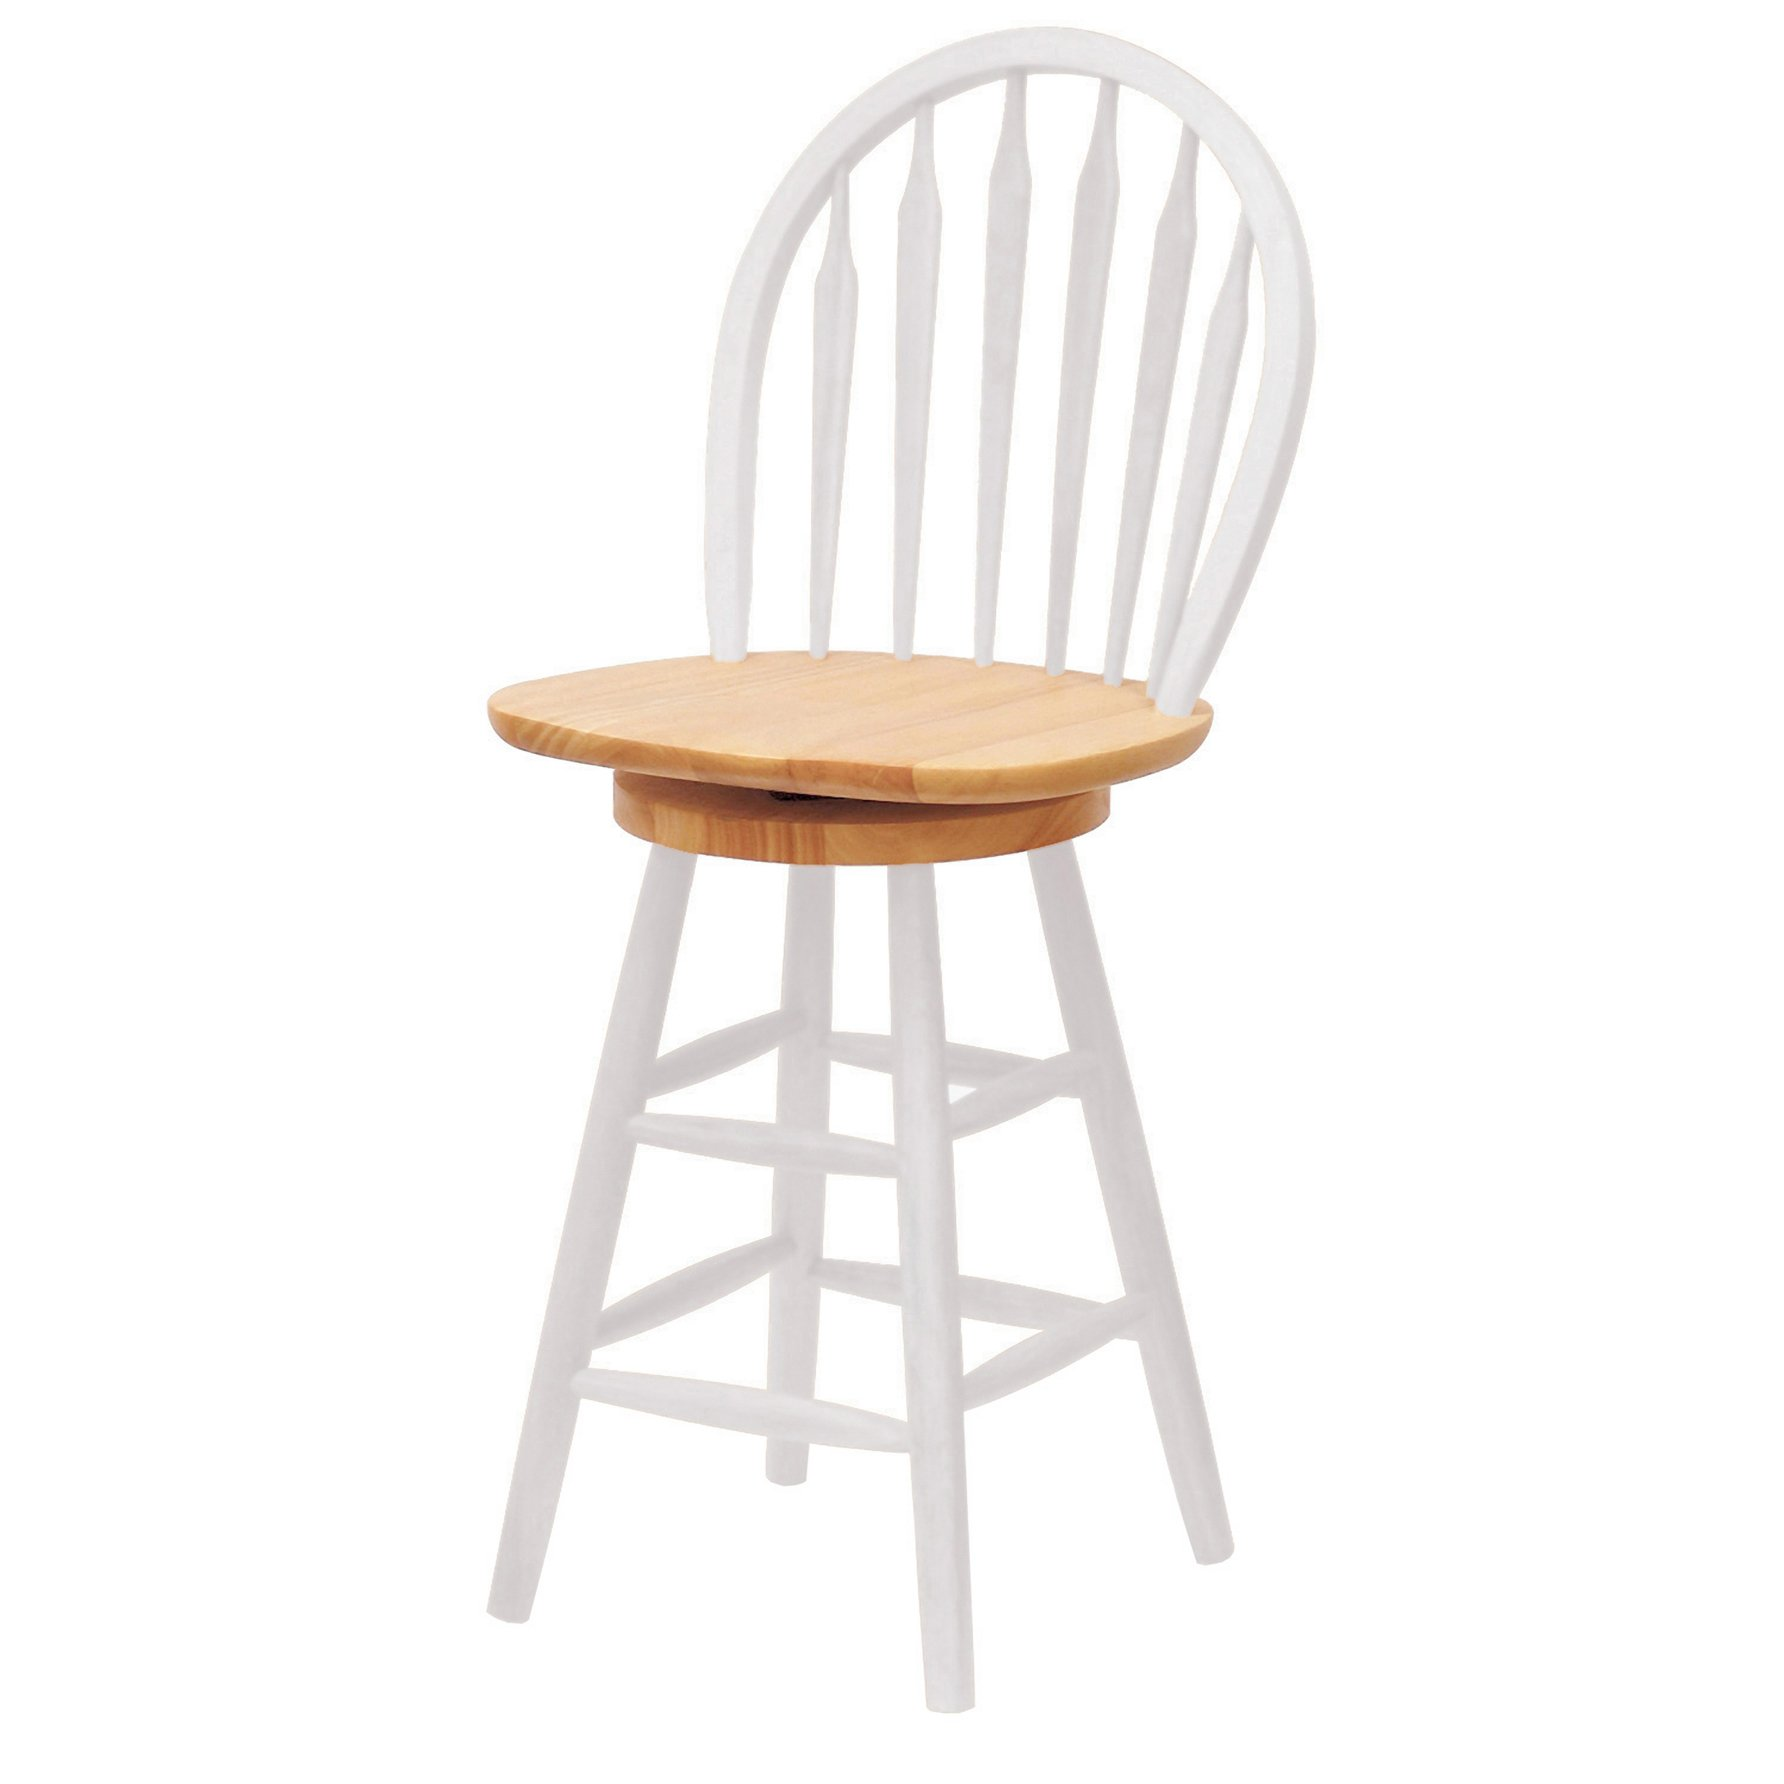 Winsome Wood 24-Inch Windsor Swivel Seat Barstool, Natural/White